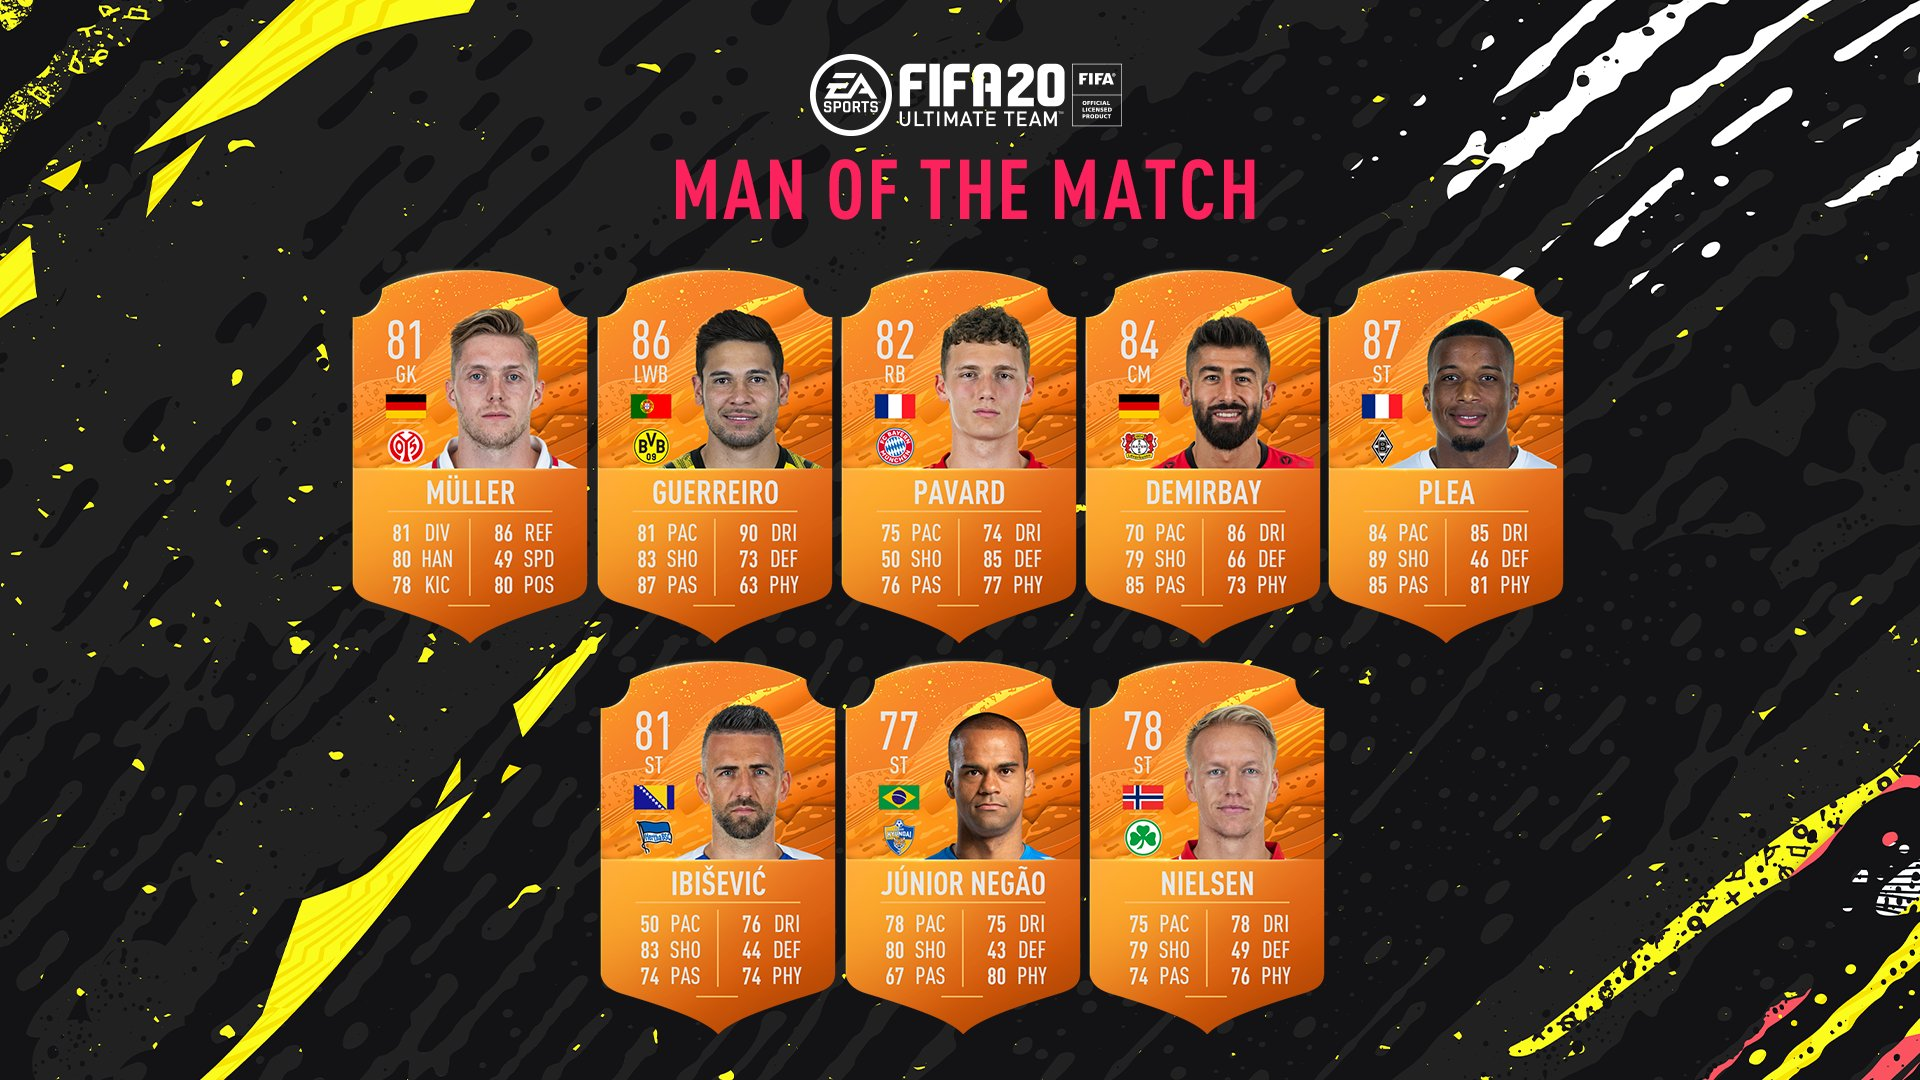 fifa 20 bundesliga man of the match player items